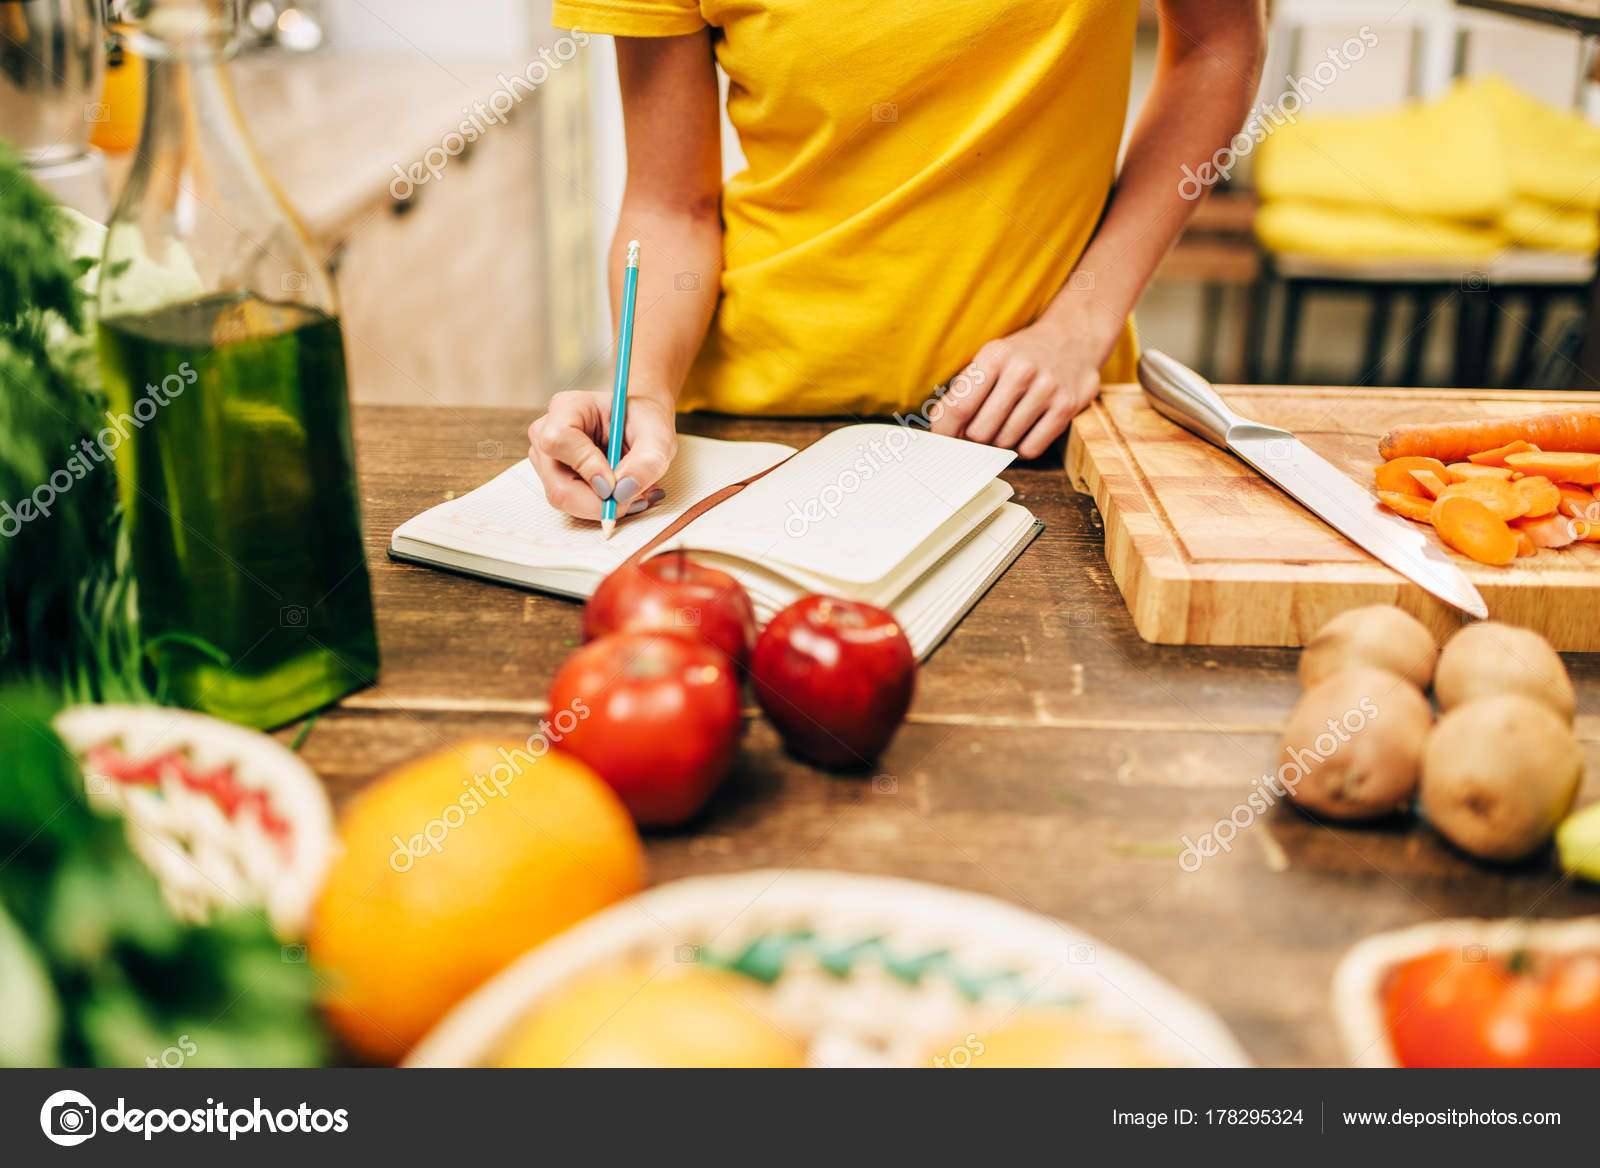 Young woman cooking kitchen writing recipe book healthy food young woman cooking kitchen writing recipe book healthy food vegetarian stock photo forumfinder Images